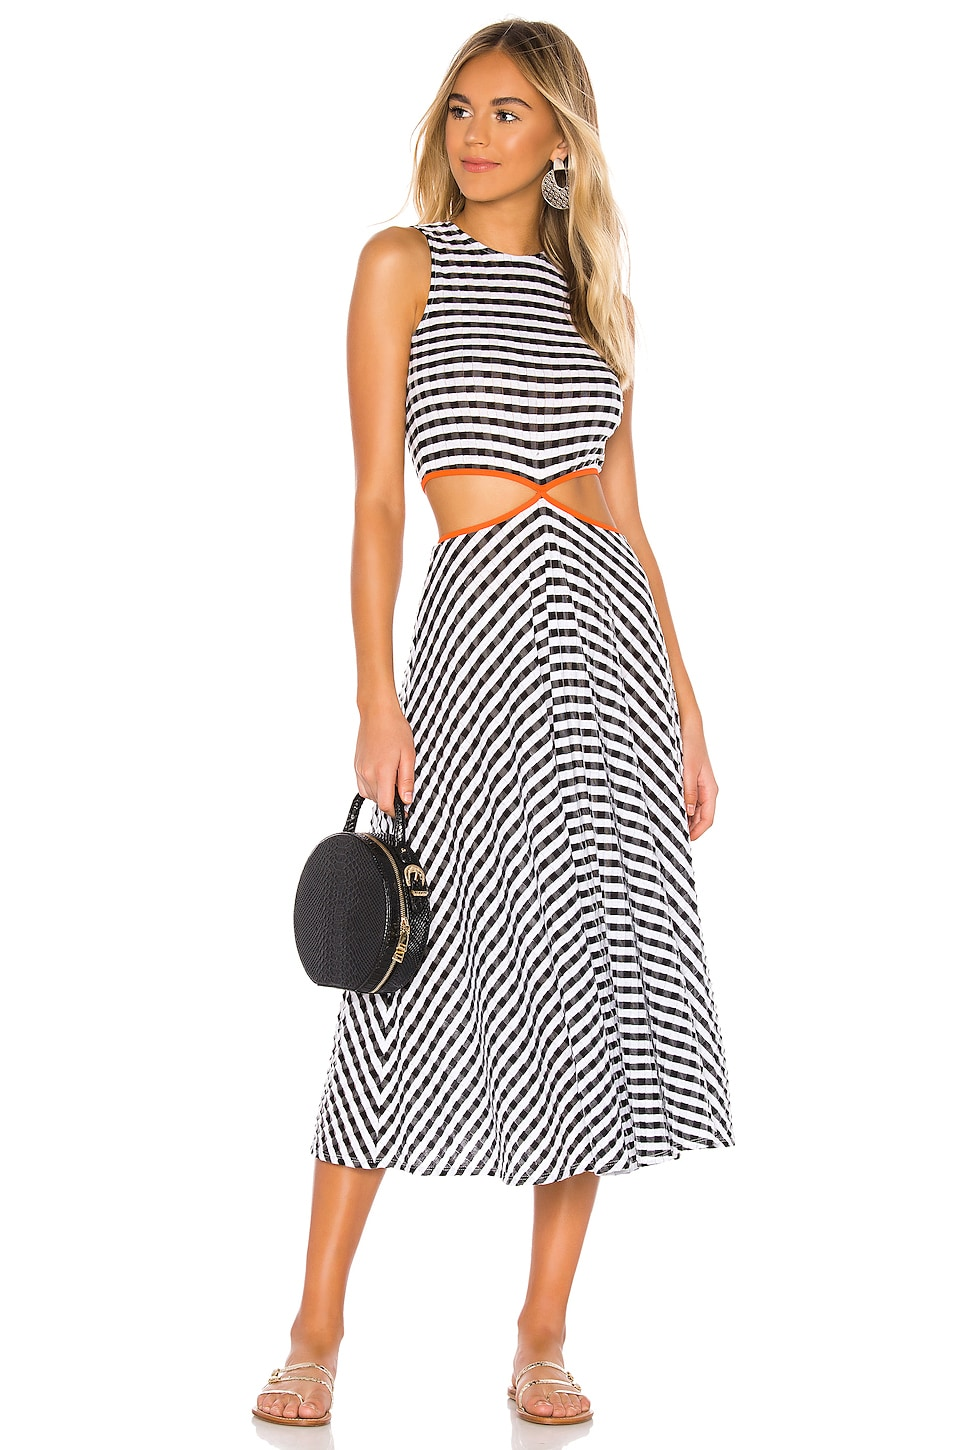 FLAGPOLE James Dress in Black & White Gingham